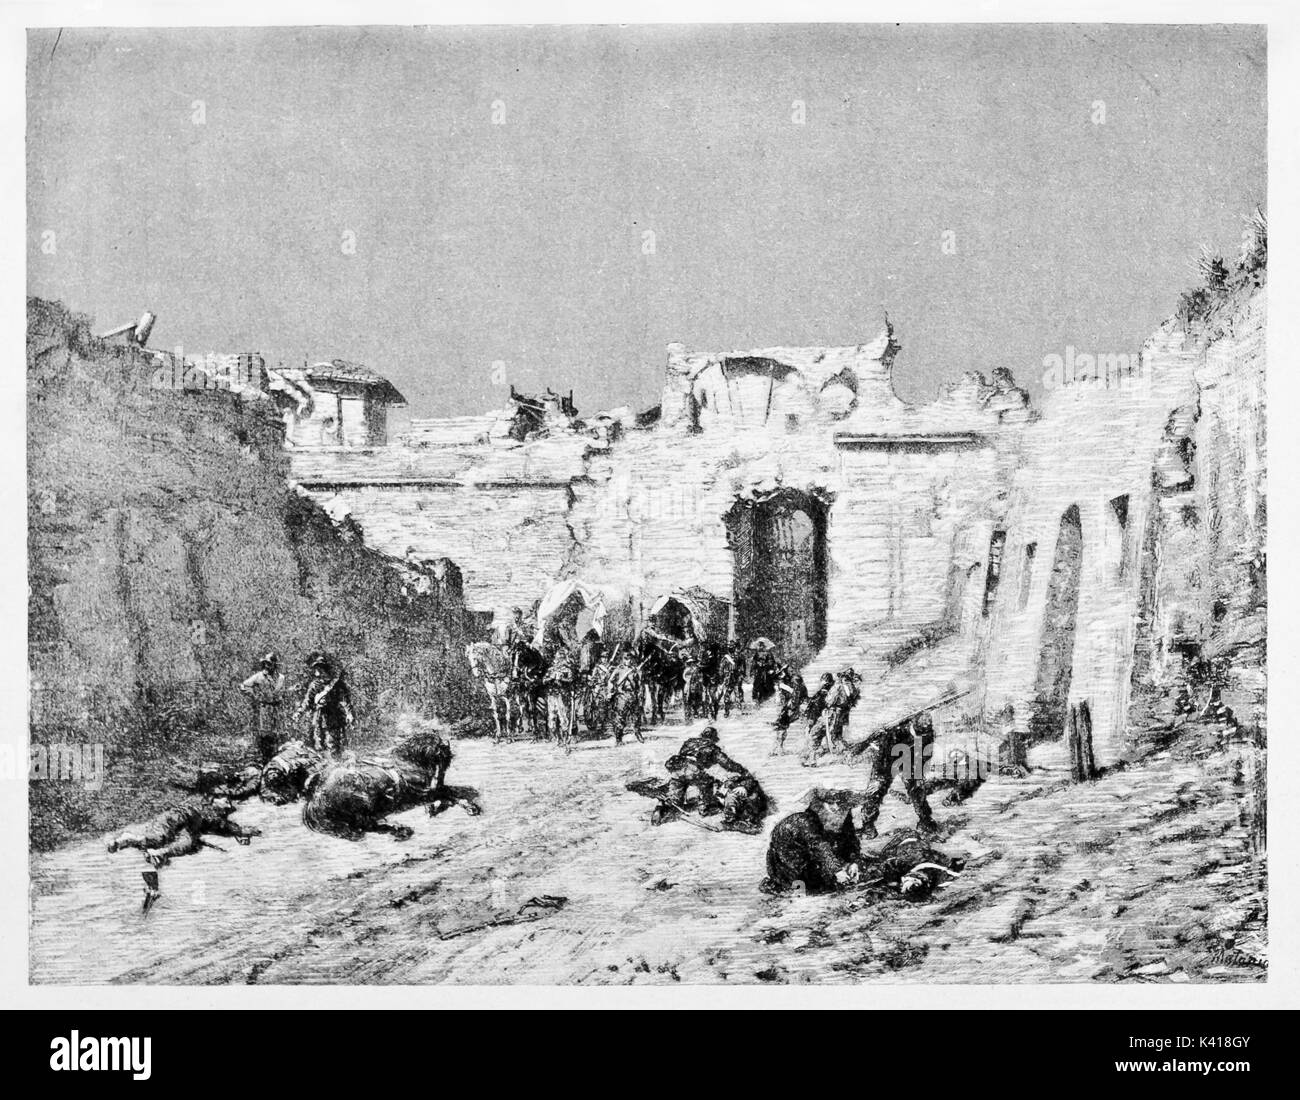 Porta San Pancrazio, Rome, in 1849, battleground bettween French army protecting the Pope and Roman Republic troops, - Stock Image